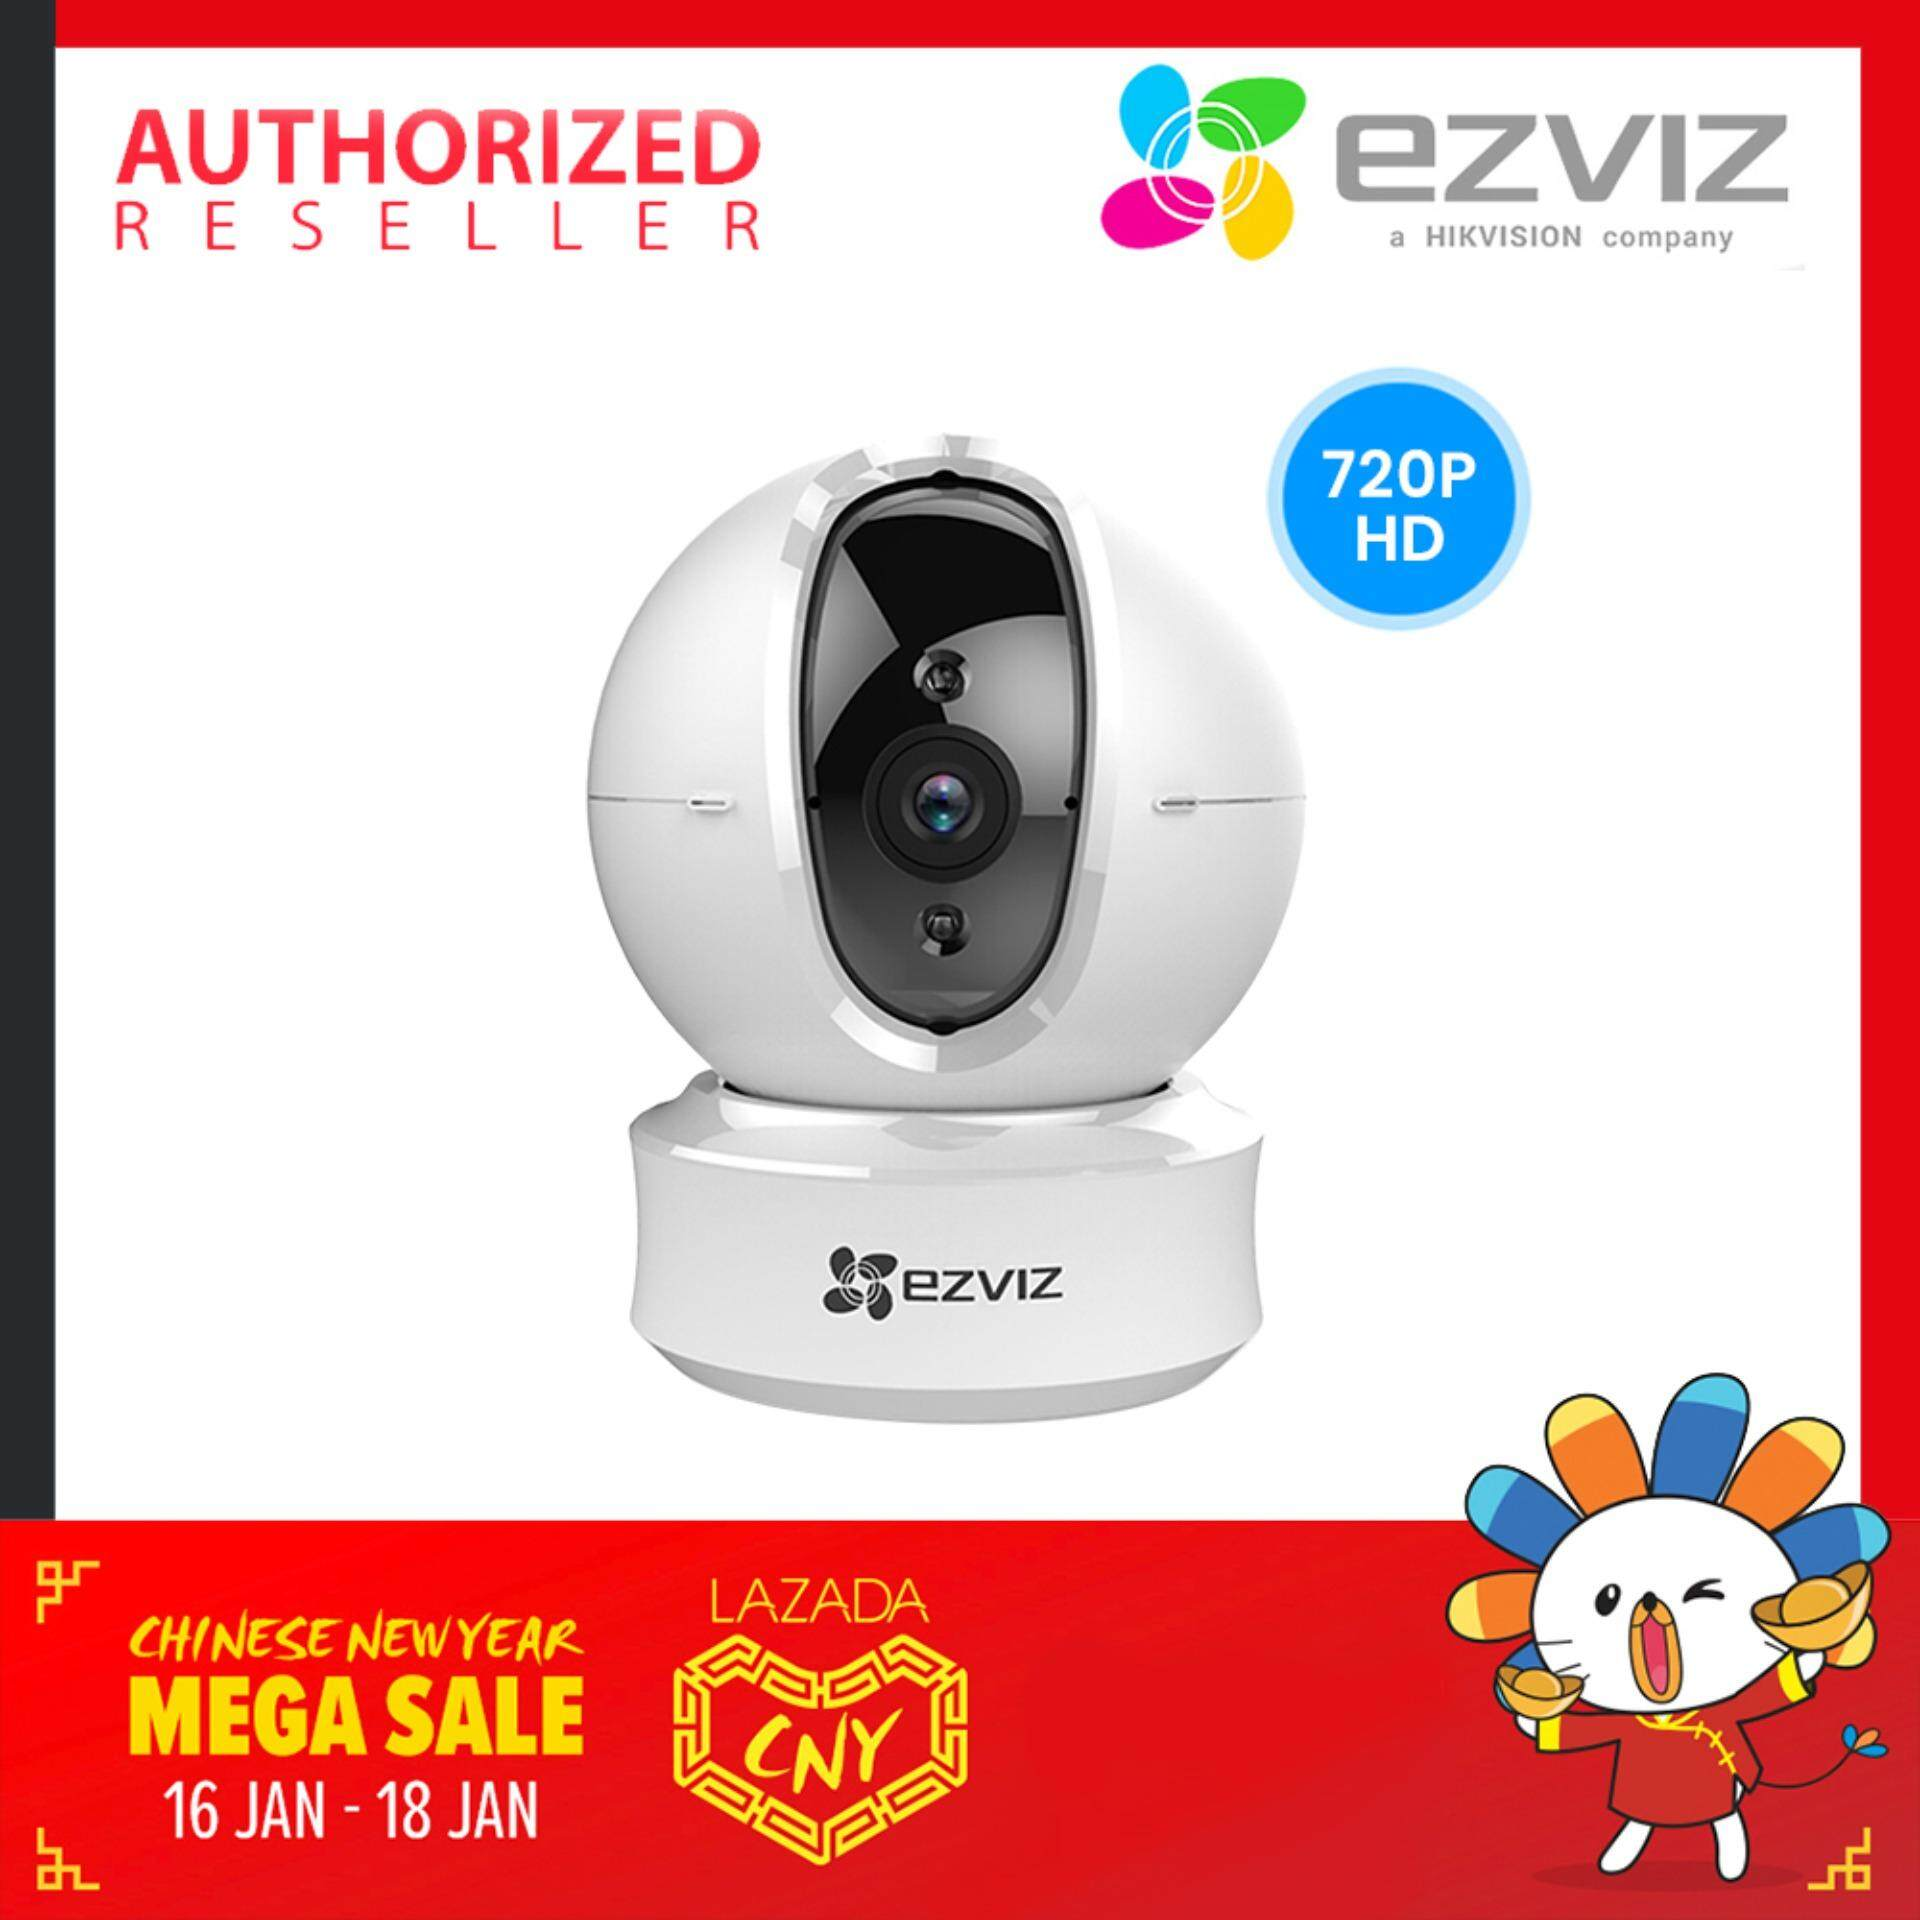 Ip Cameras Buy At Best Price In Malaysia Lazada Megapixel 360 Degree Camera Block Diagram Ezviz Ez360 1mp 720p Hd Pan Tilt Two Way Audio Night Vision